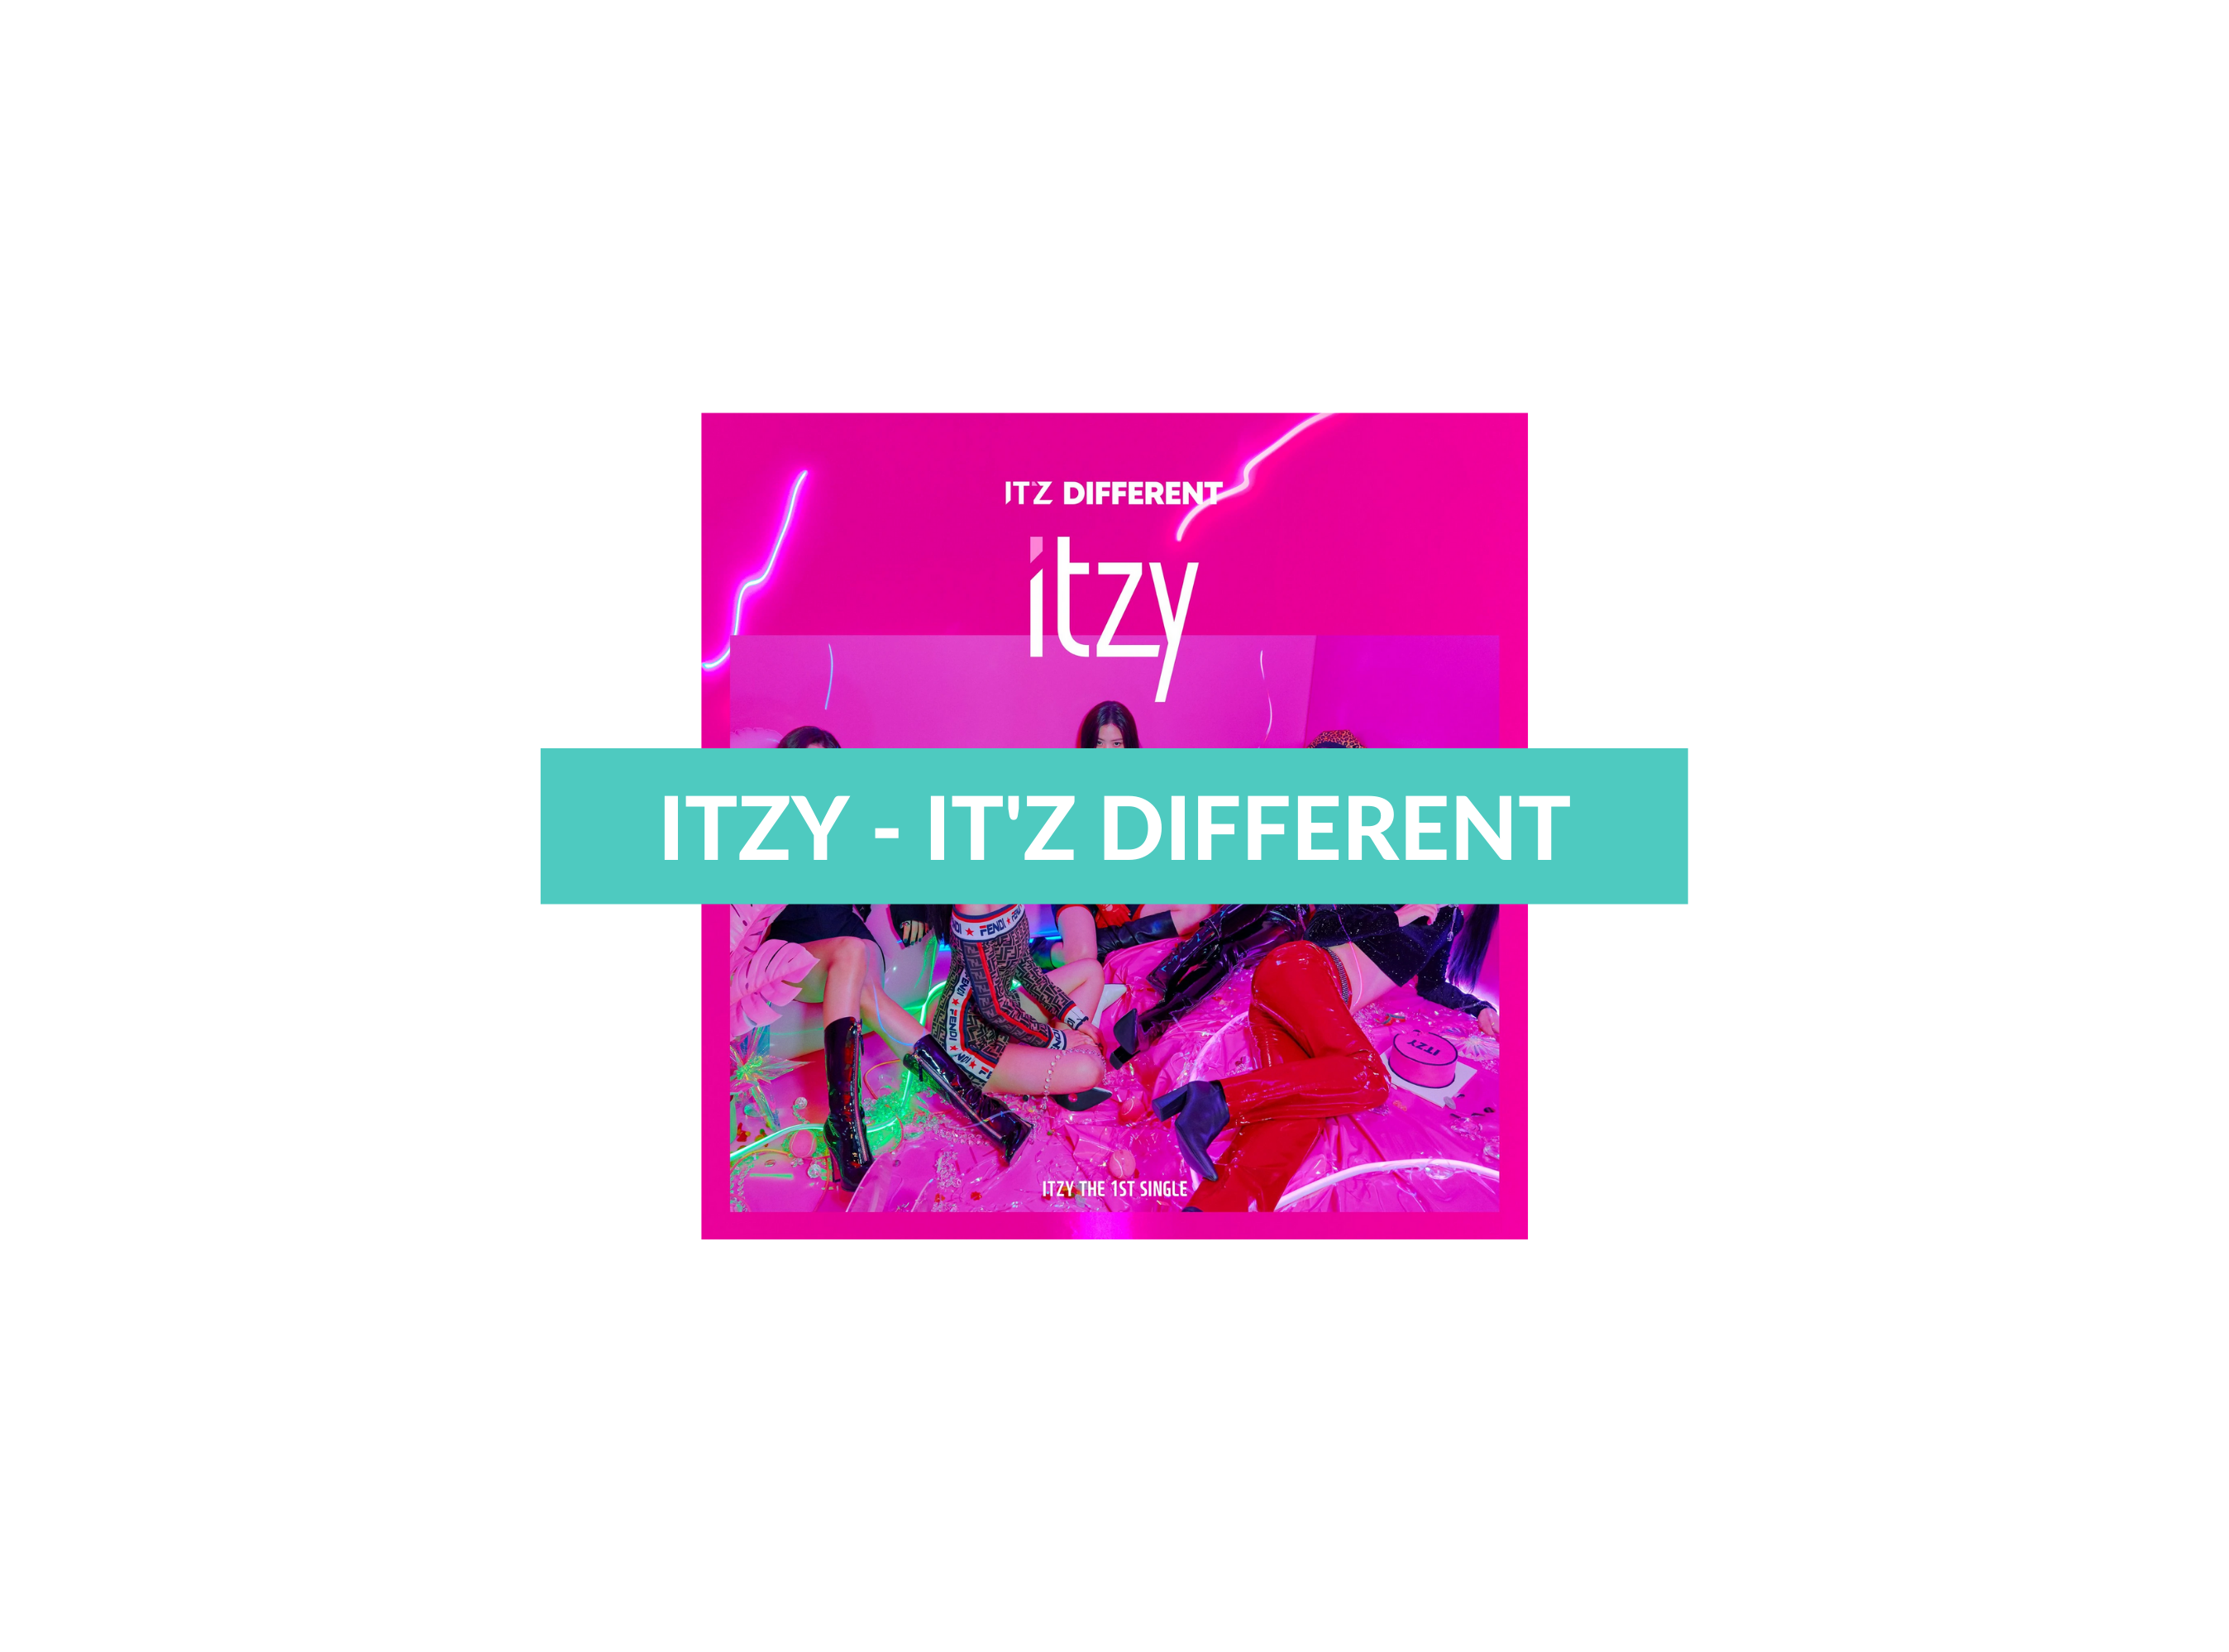 Itzy - IT'z Different